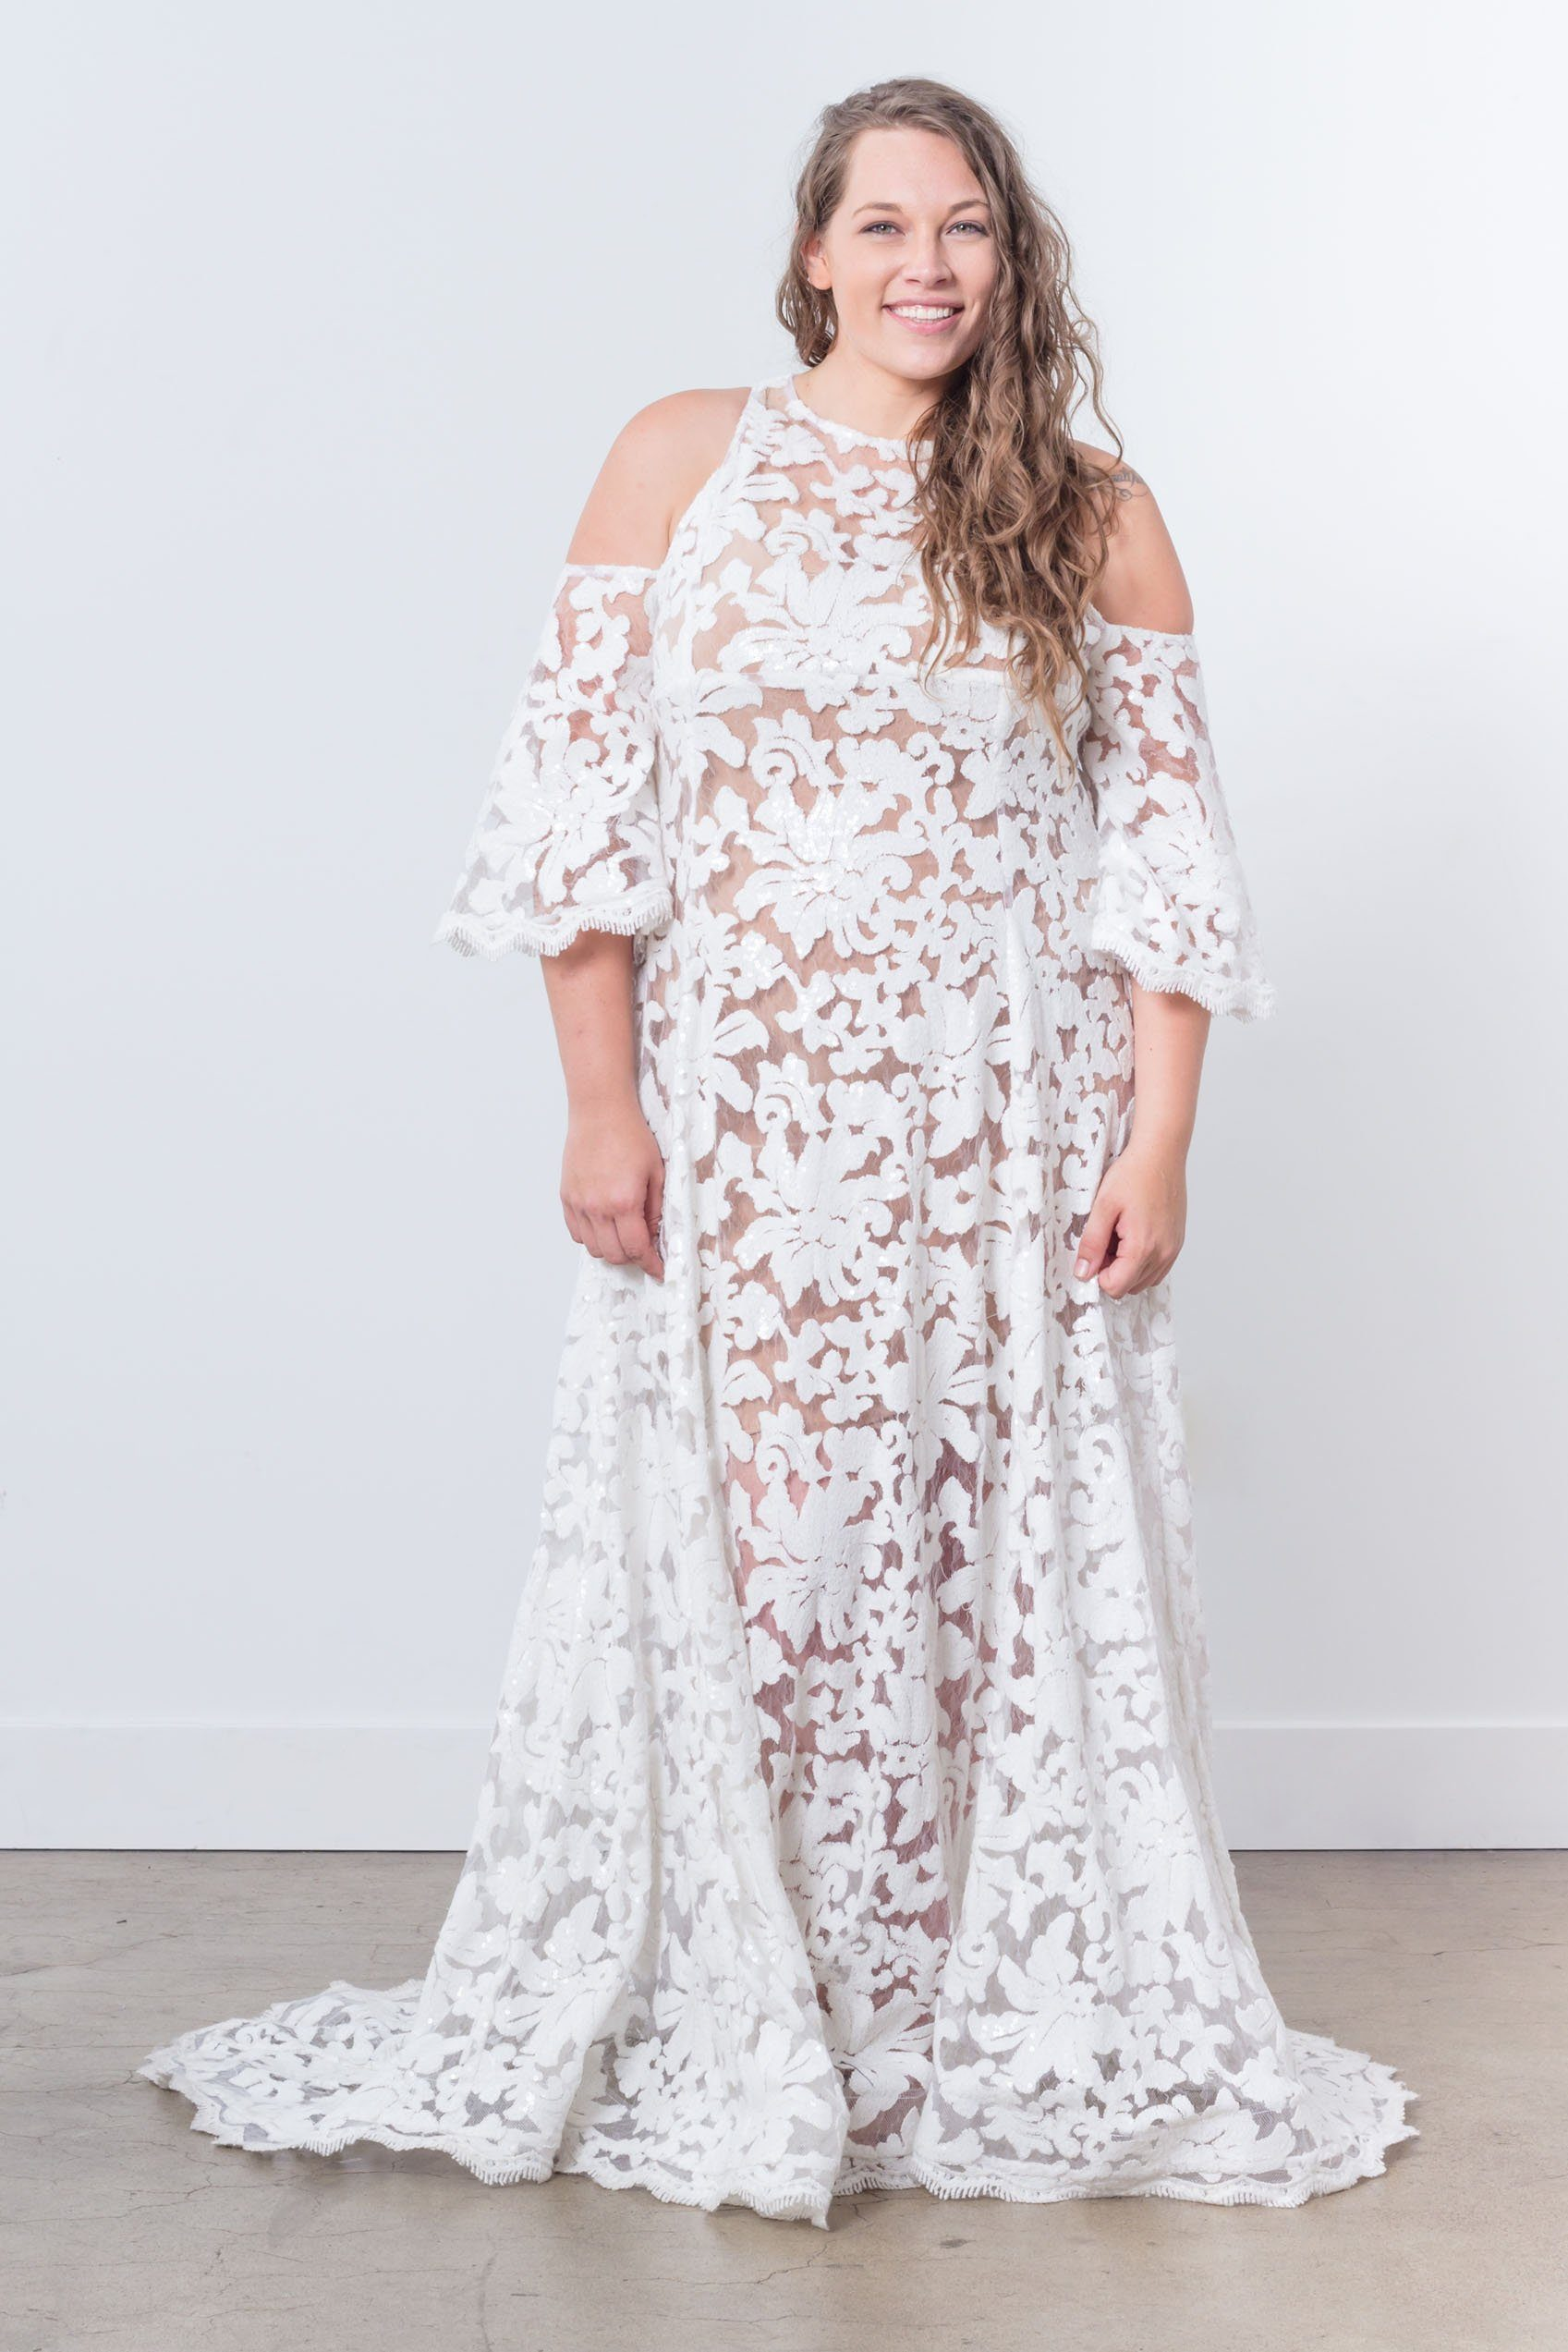 Nerecina Plus Size Venus Gown Bridal Formalwear Made in LA Nude Lace See through Nude gown long sleeve Cold shoulder